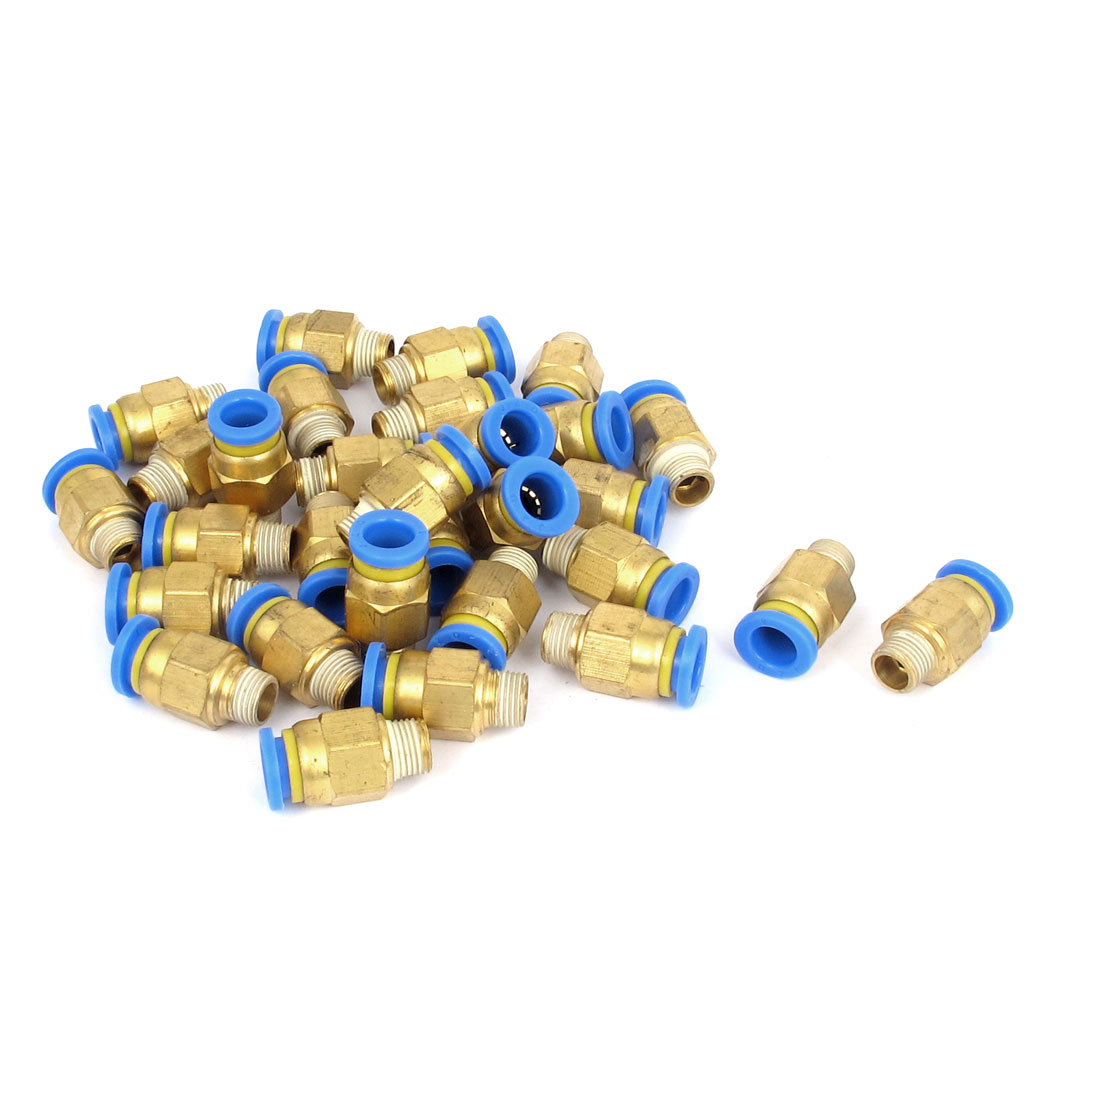 30 Pcs 1/8BSP Male Thread 8mm Push in Joint Pneumatic Connector Quick Fittings